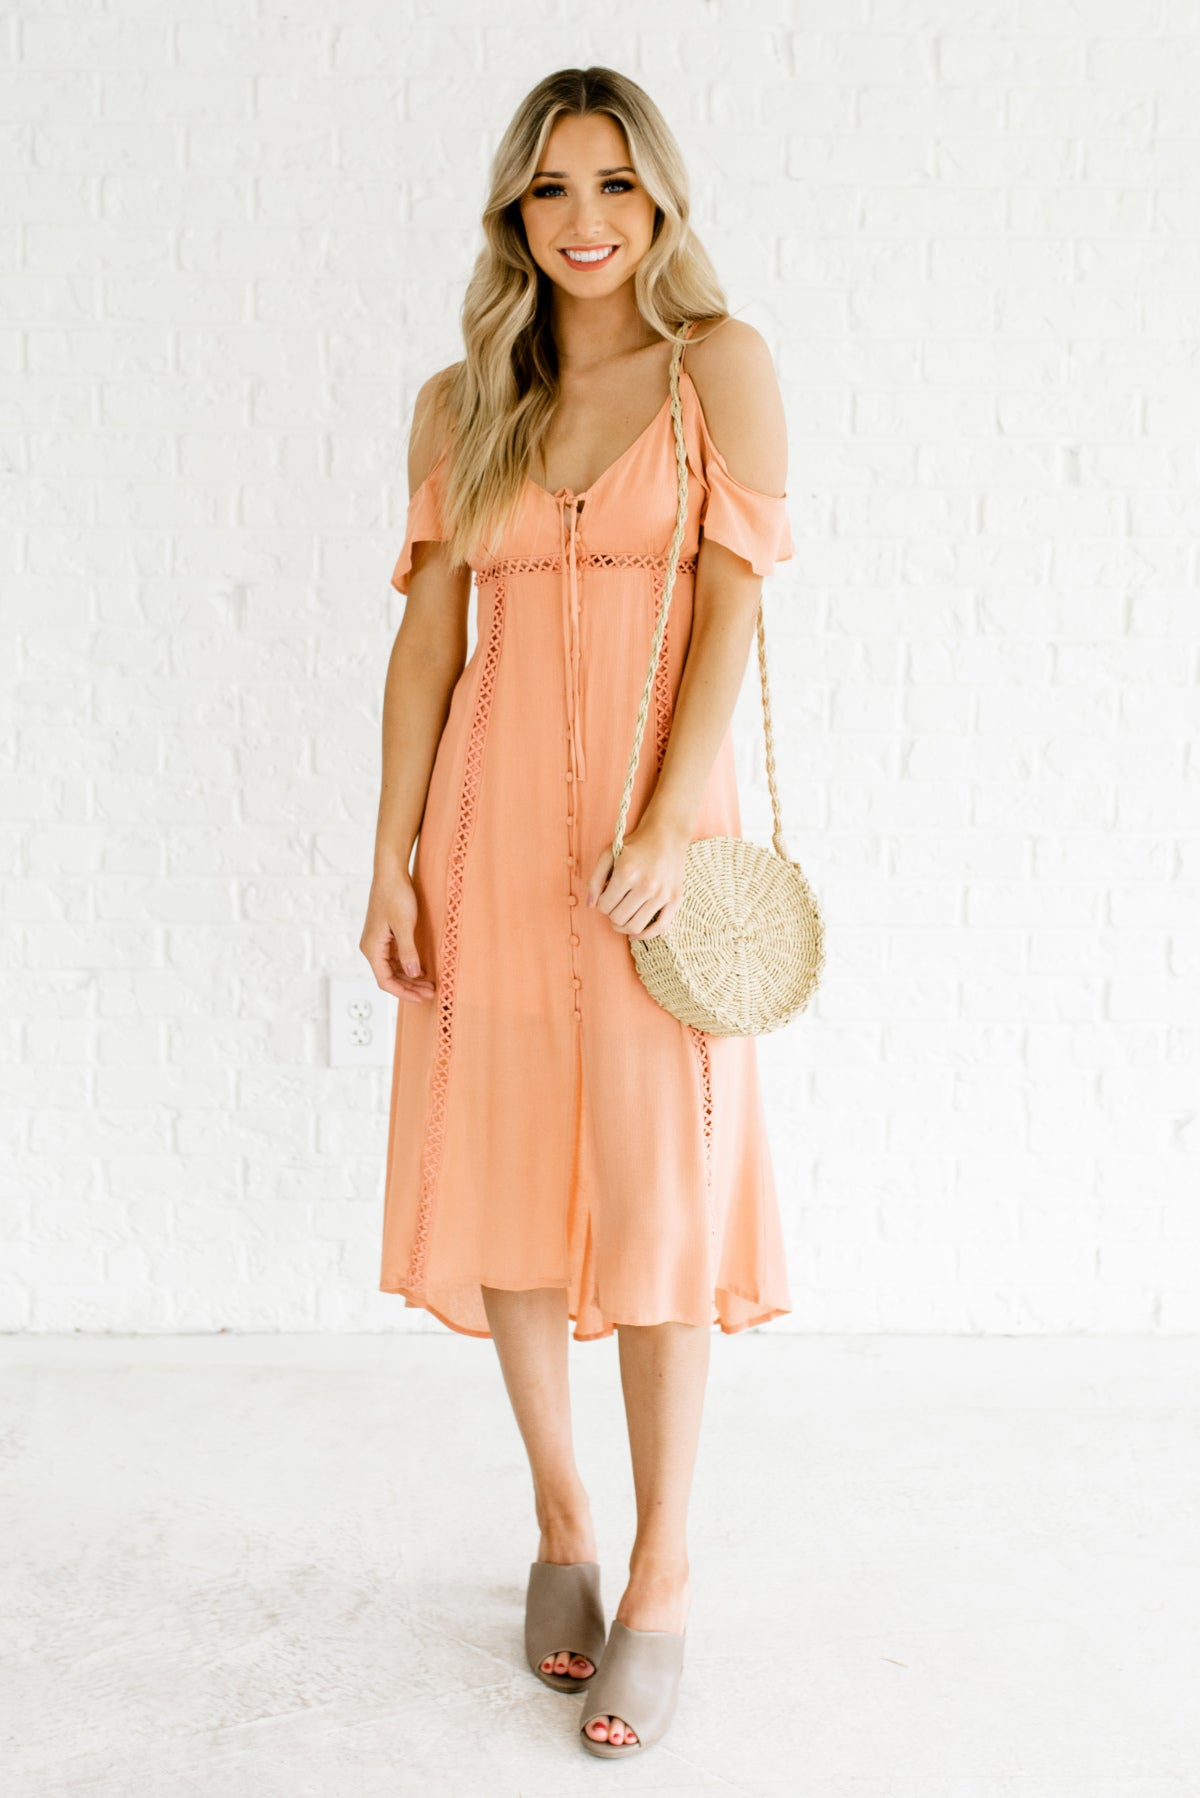 search for clearance vivid and great in style 100% satisfaction You're a Peach Pink Cold Shoulder Midi Dress